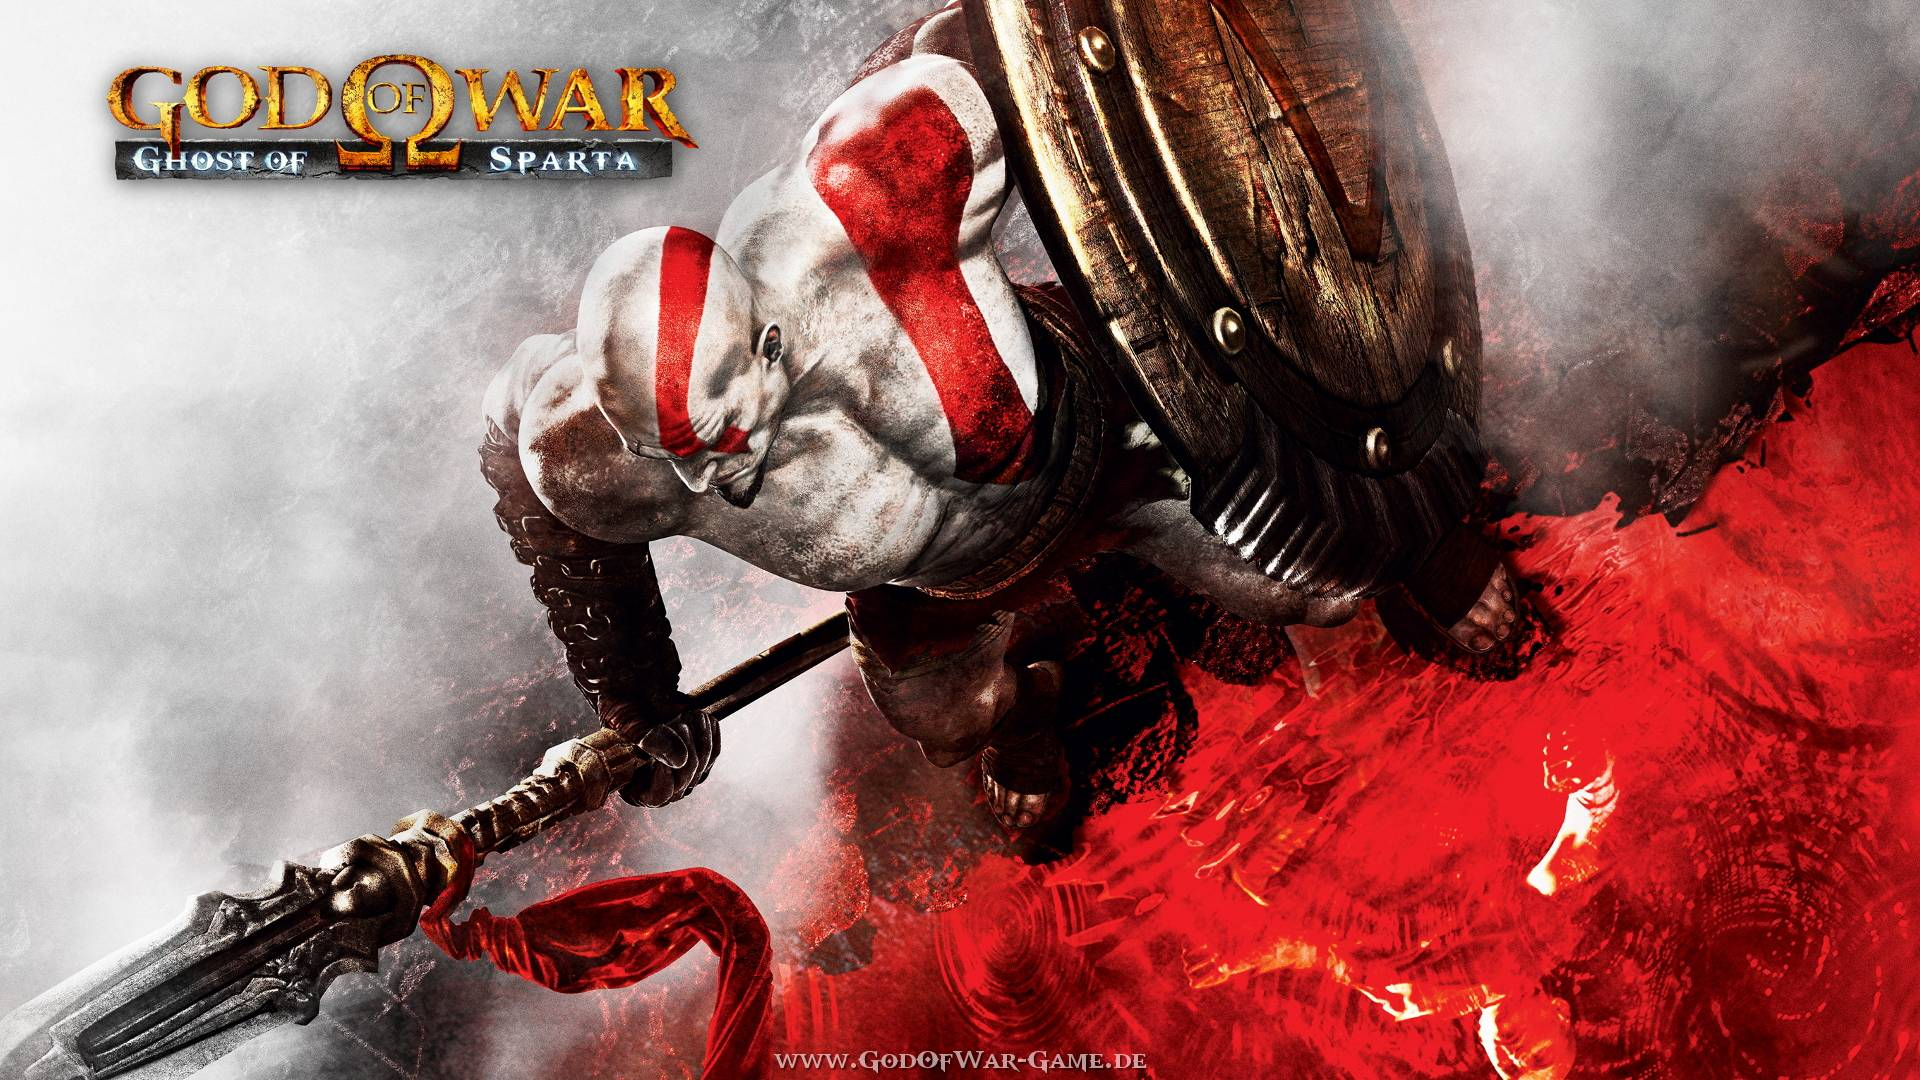 Image For > God Of War Wallpapers Hd 1080p